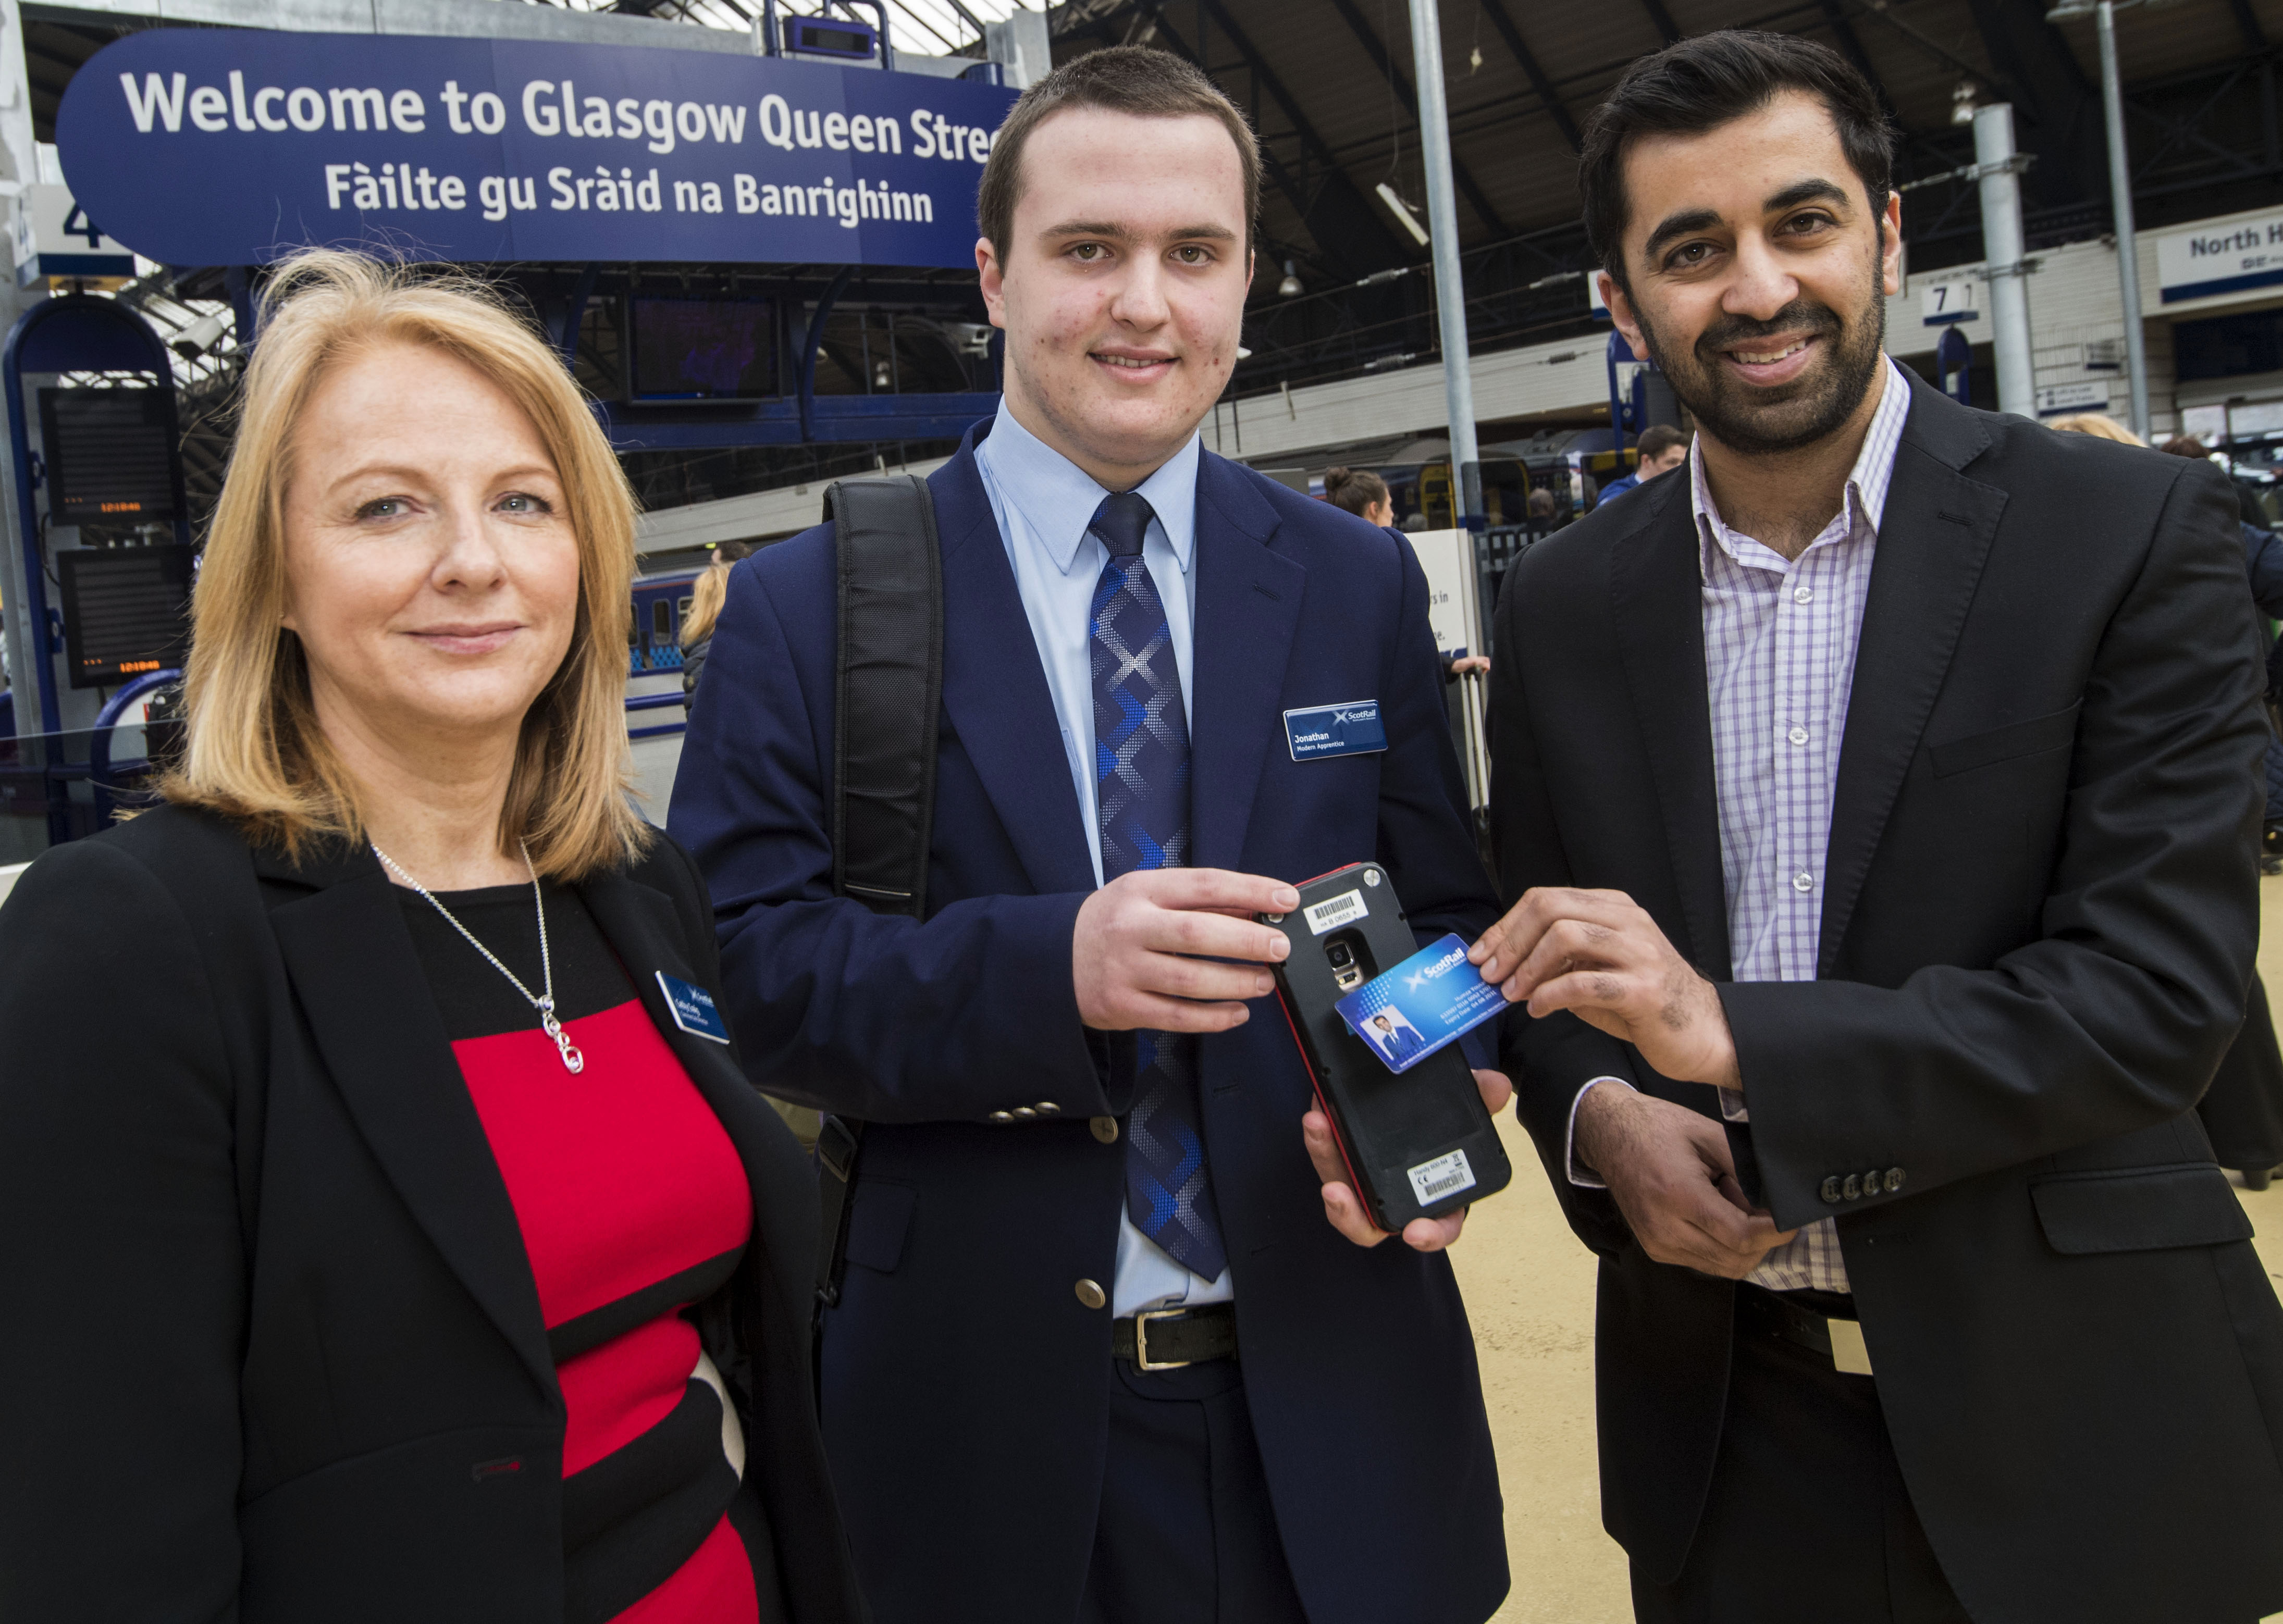 13/03/17 - 17031204 - SCOTRAIL  QUEEN STREET STATION - GLASGOW  'Thank Yous' fares photocall  (left to right)  Cathy Craig (Commercial Director), Jonathan MacLean (Modern Apprentice) and The Minister for Transport and the Islands, Humza Yousaf